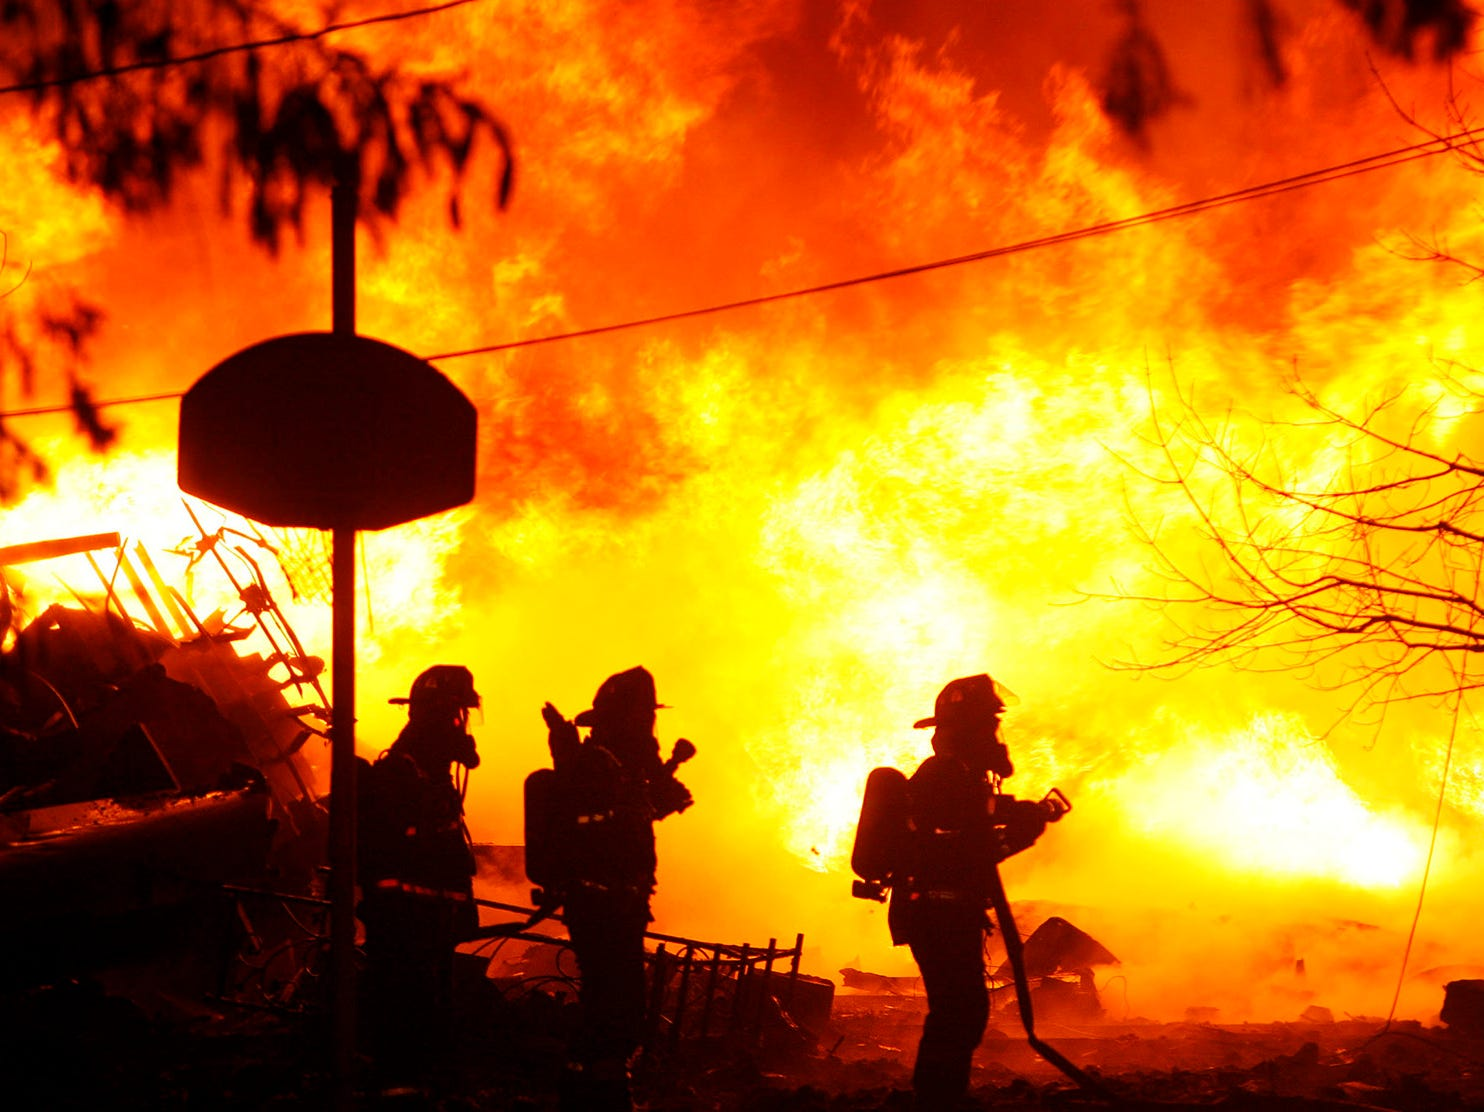 Volunteer firefighters attempt to put out flames from Continental Airlines Flight 3407  on Thursday Feb. 12, 2009 after it crashed into a home in Clarence Center, N.Y. killing all 48 people on board and one on the ground according to officials. (AP Photo/The Buffalo News - Harry Scull Jr)